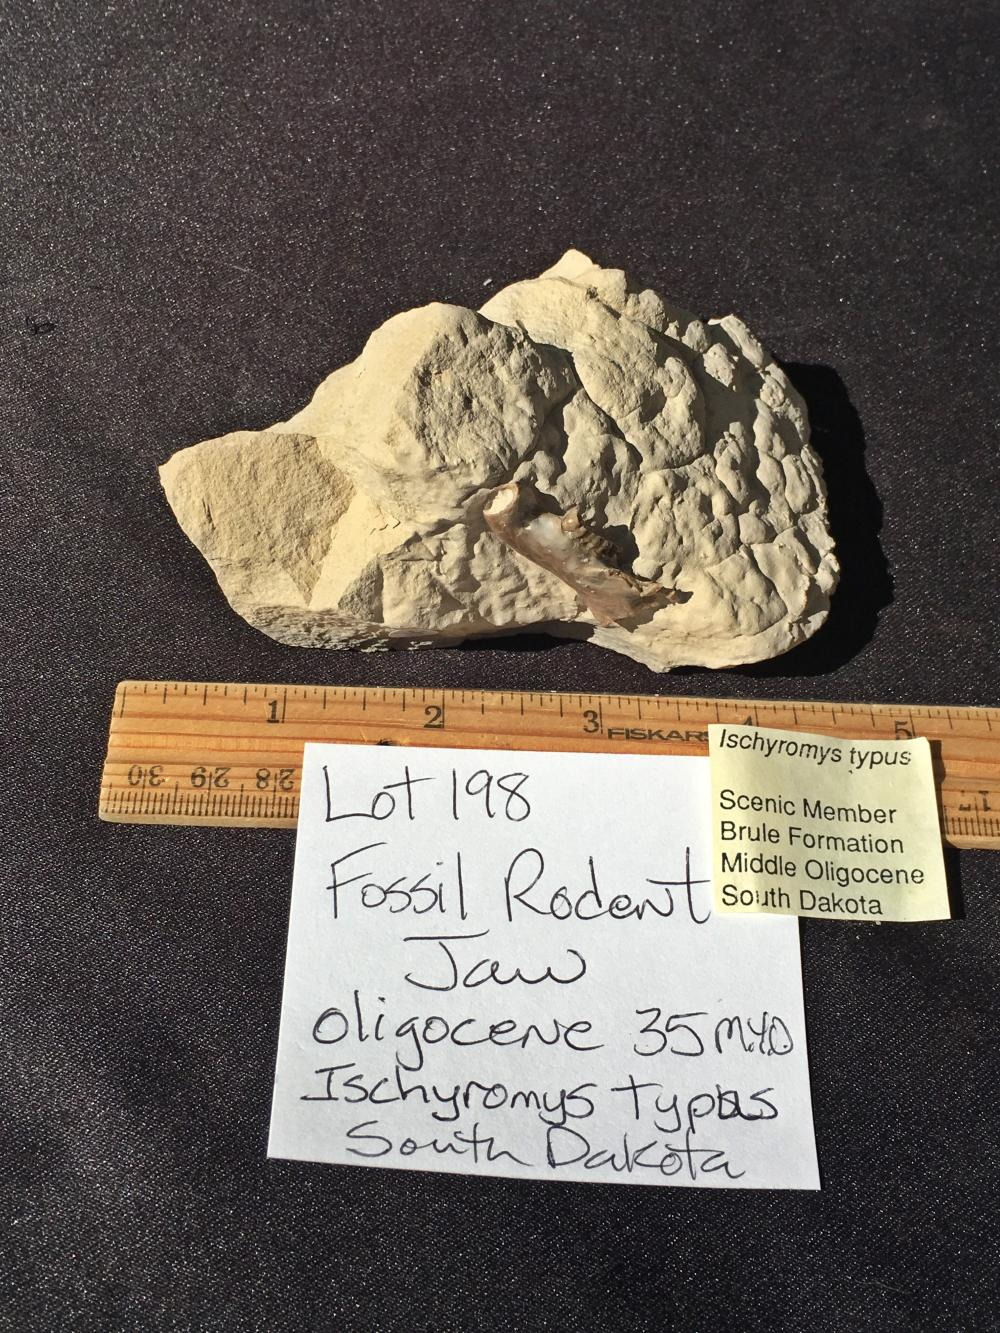 Lot 198: Rock, Fossil, Natural, Collectible, Specimen